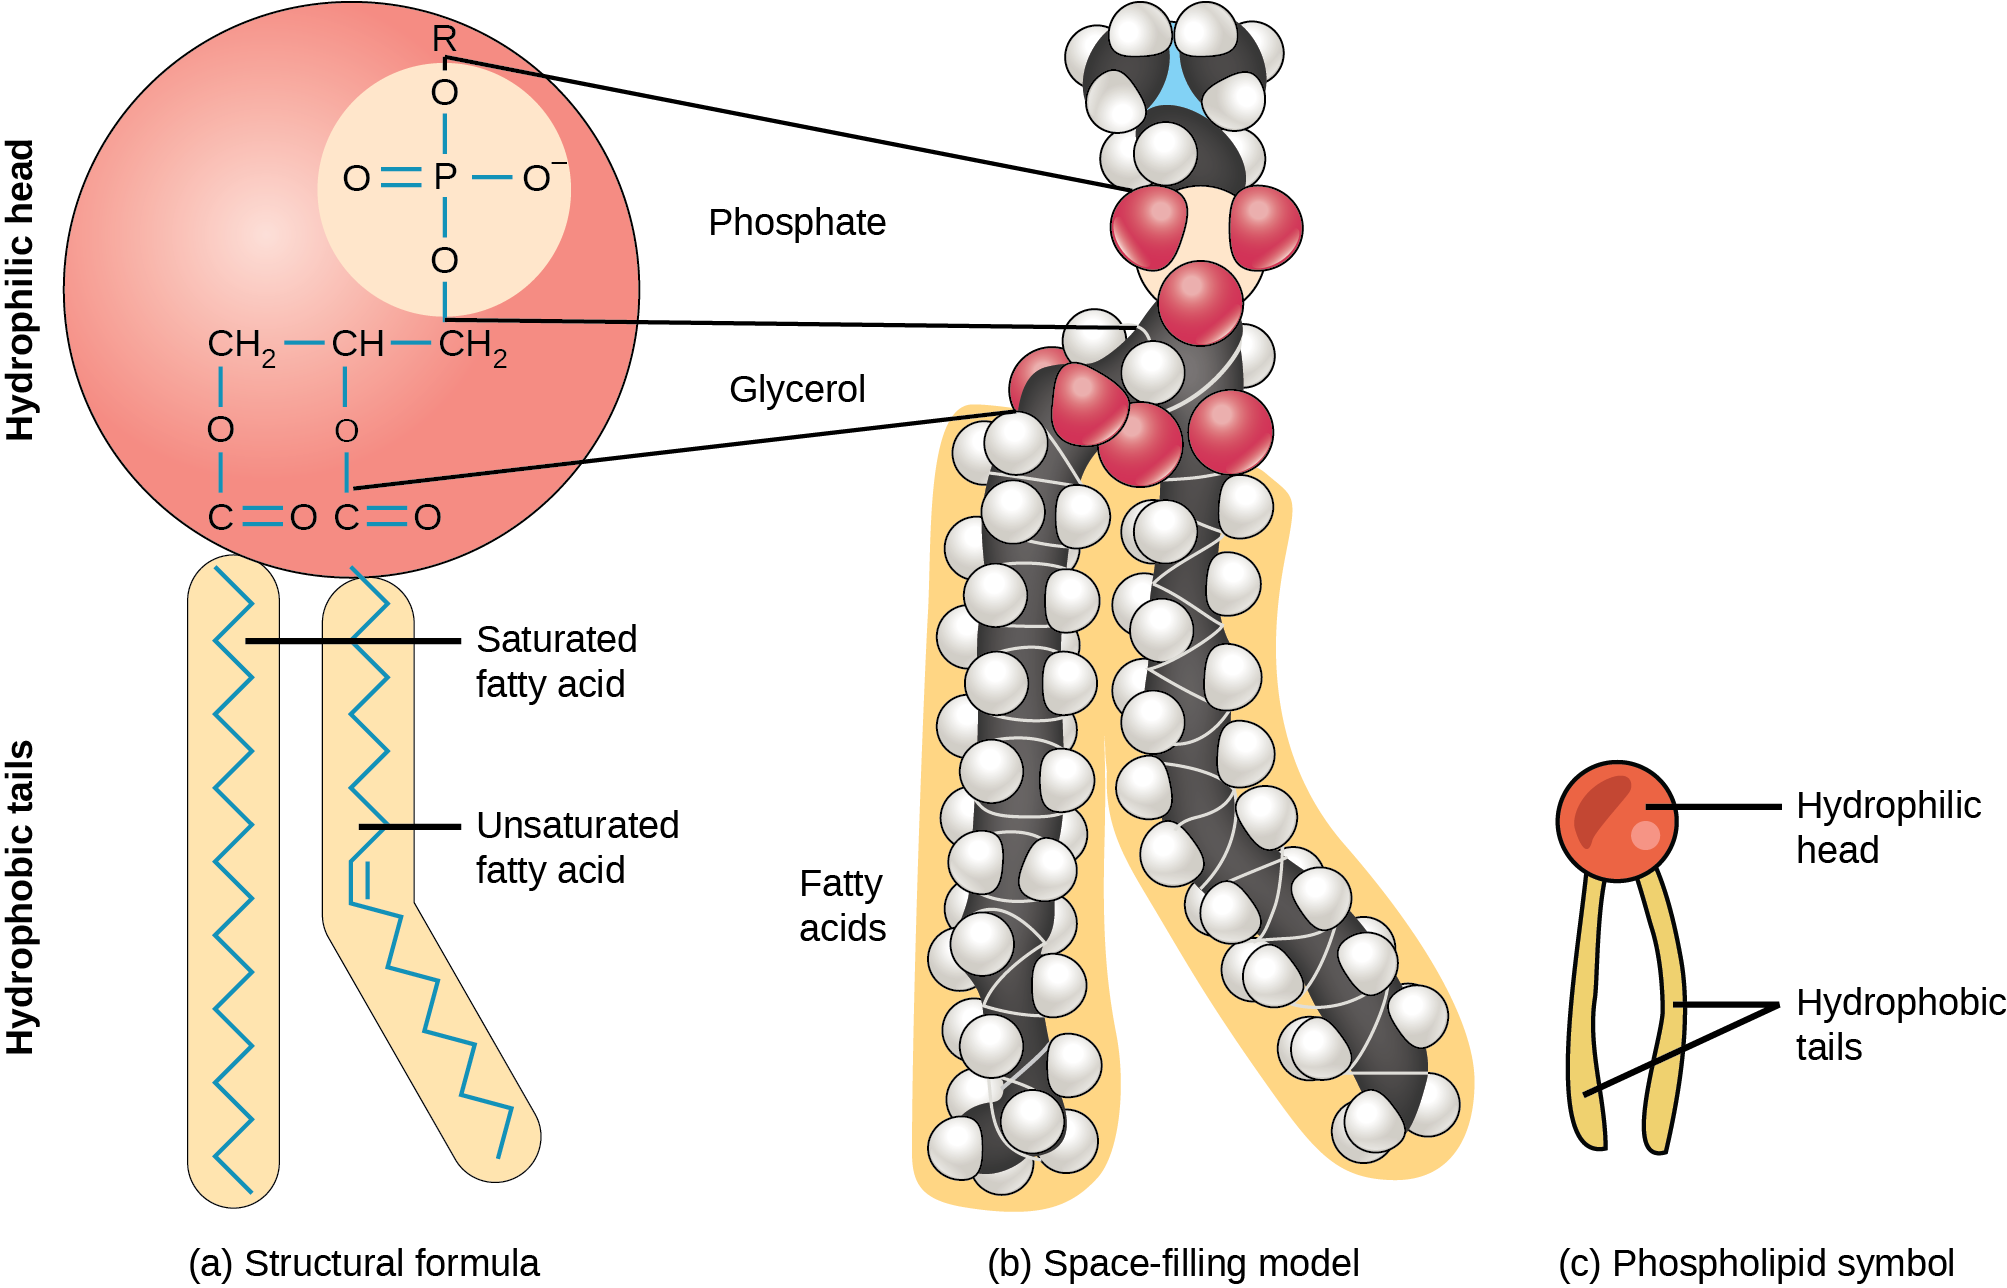 An illustration of a phospholipid shows a hydrophilic head group composed of phosphate connected to a three-carbon glycerol molecule, and two hydrophobic tails composed of long hydrocarbon chains.